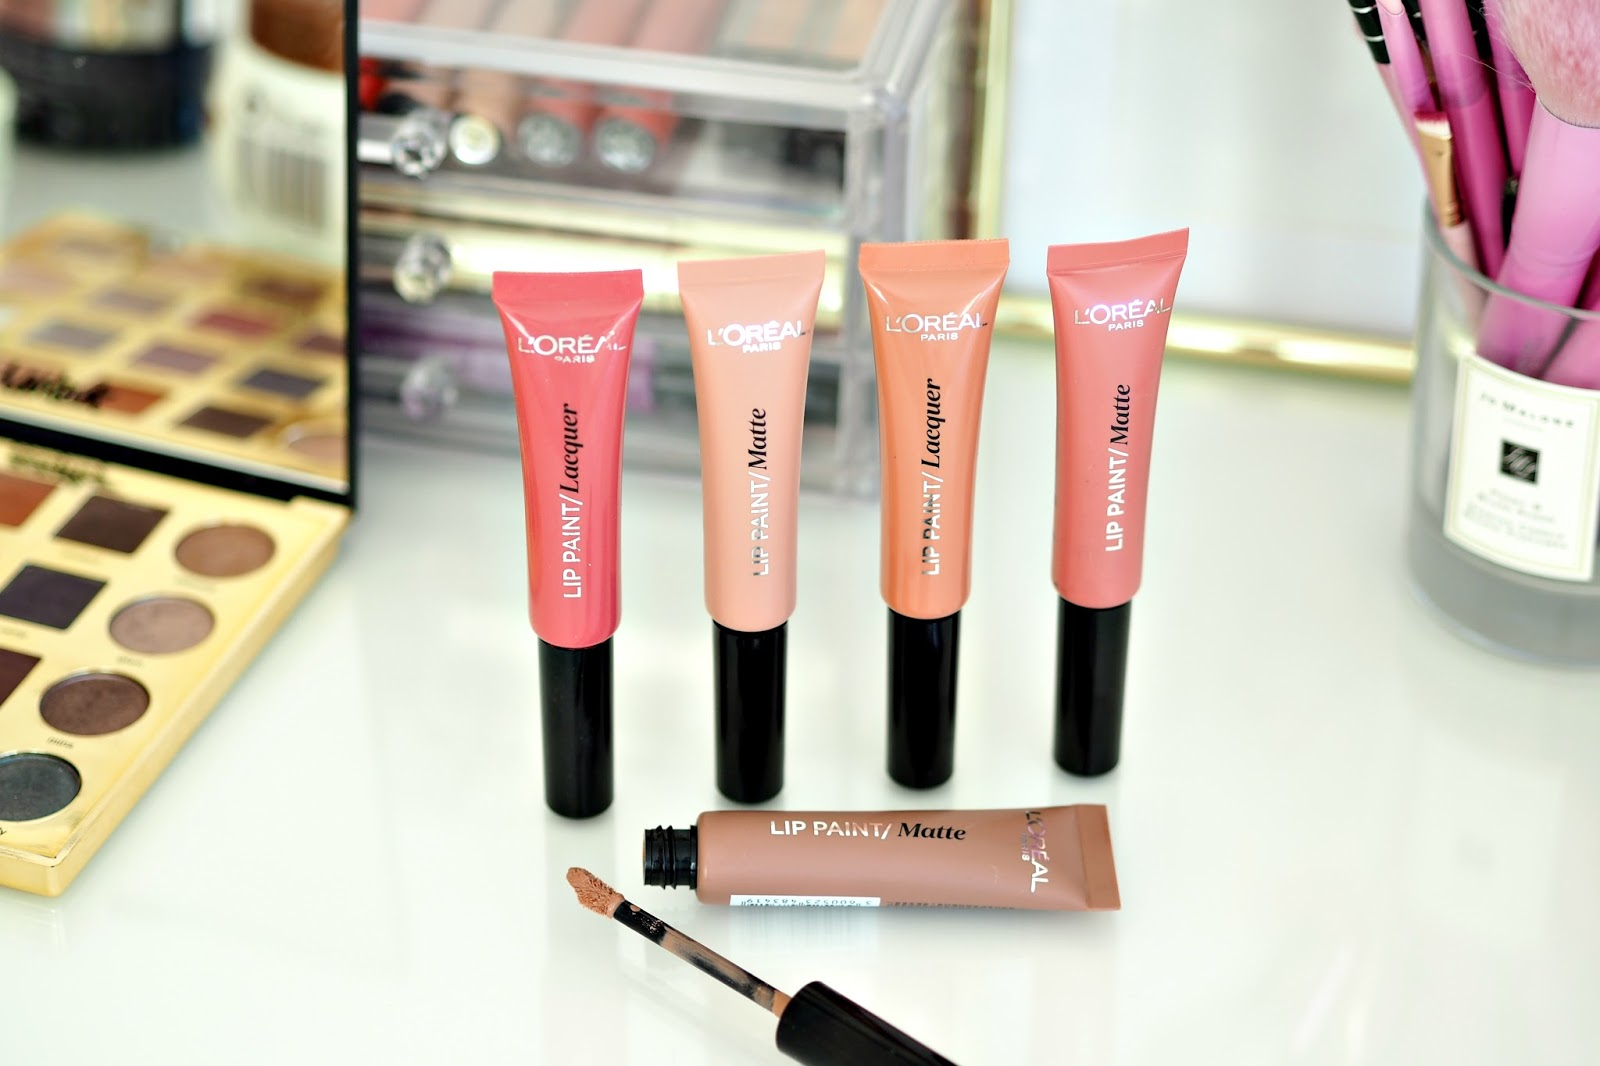 L'Oreal Infallible Lip Paints